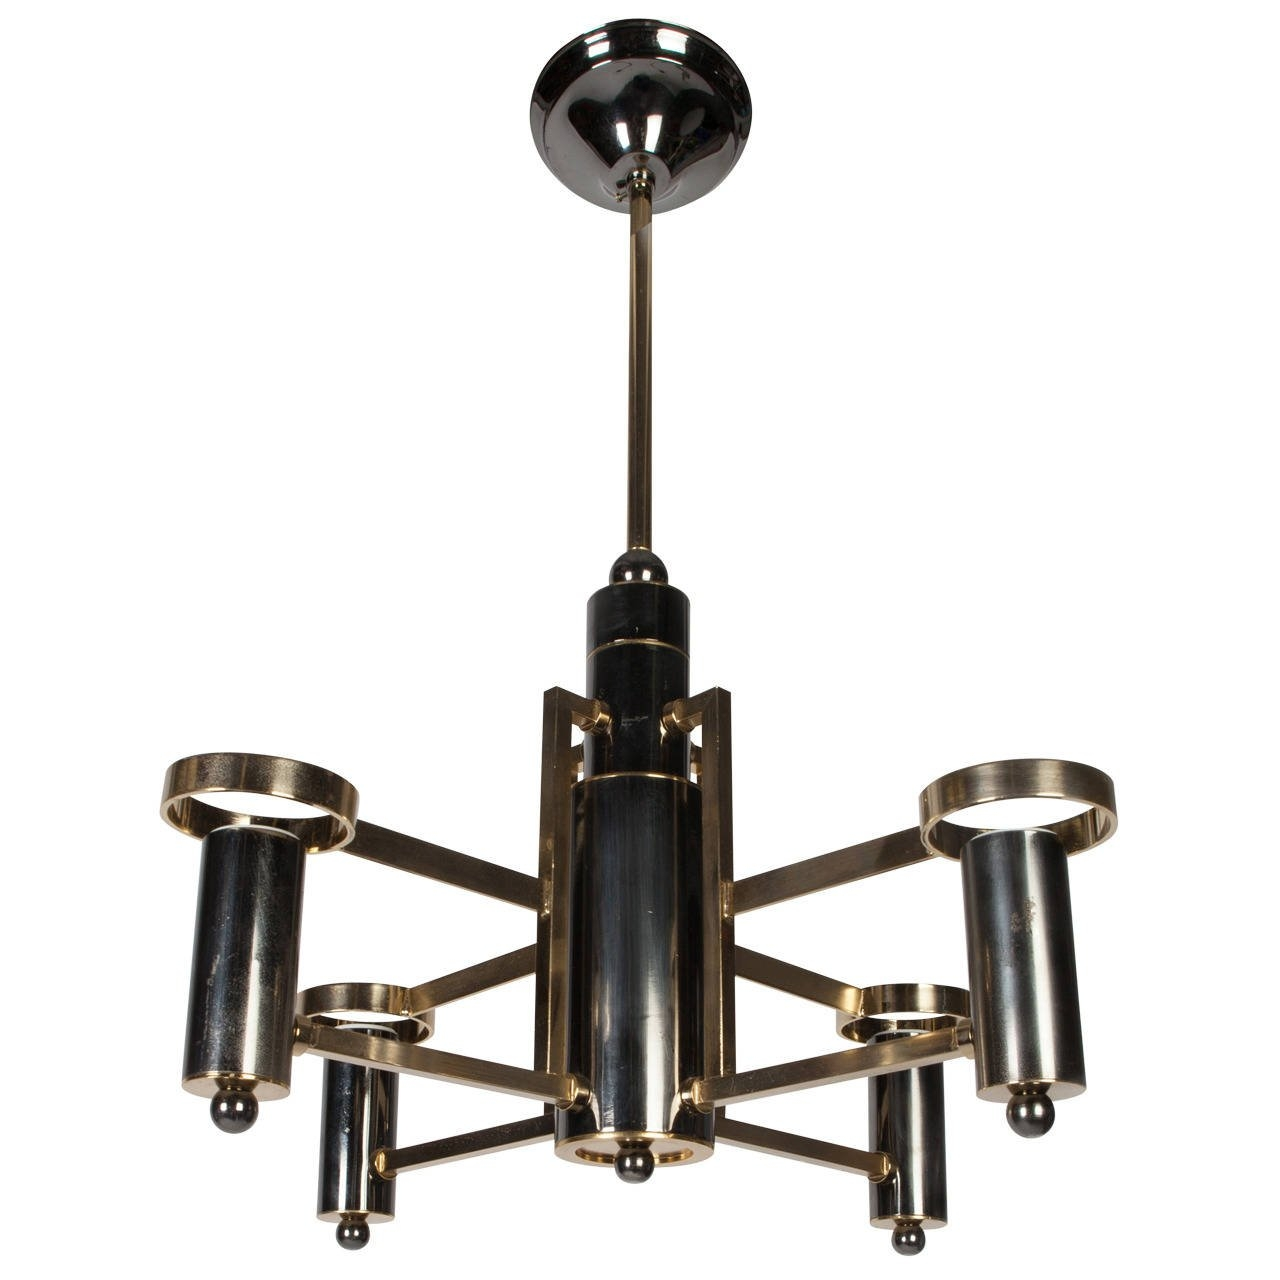 Vintage Chrome Chandelier For Sale At 1stdibs Throughout Chrome Chandelier (Image 14 of 15)